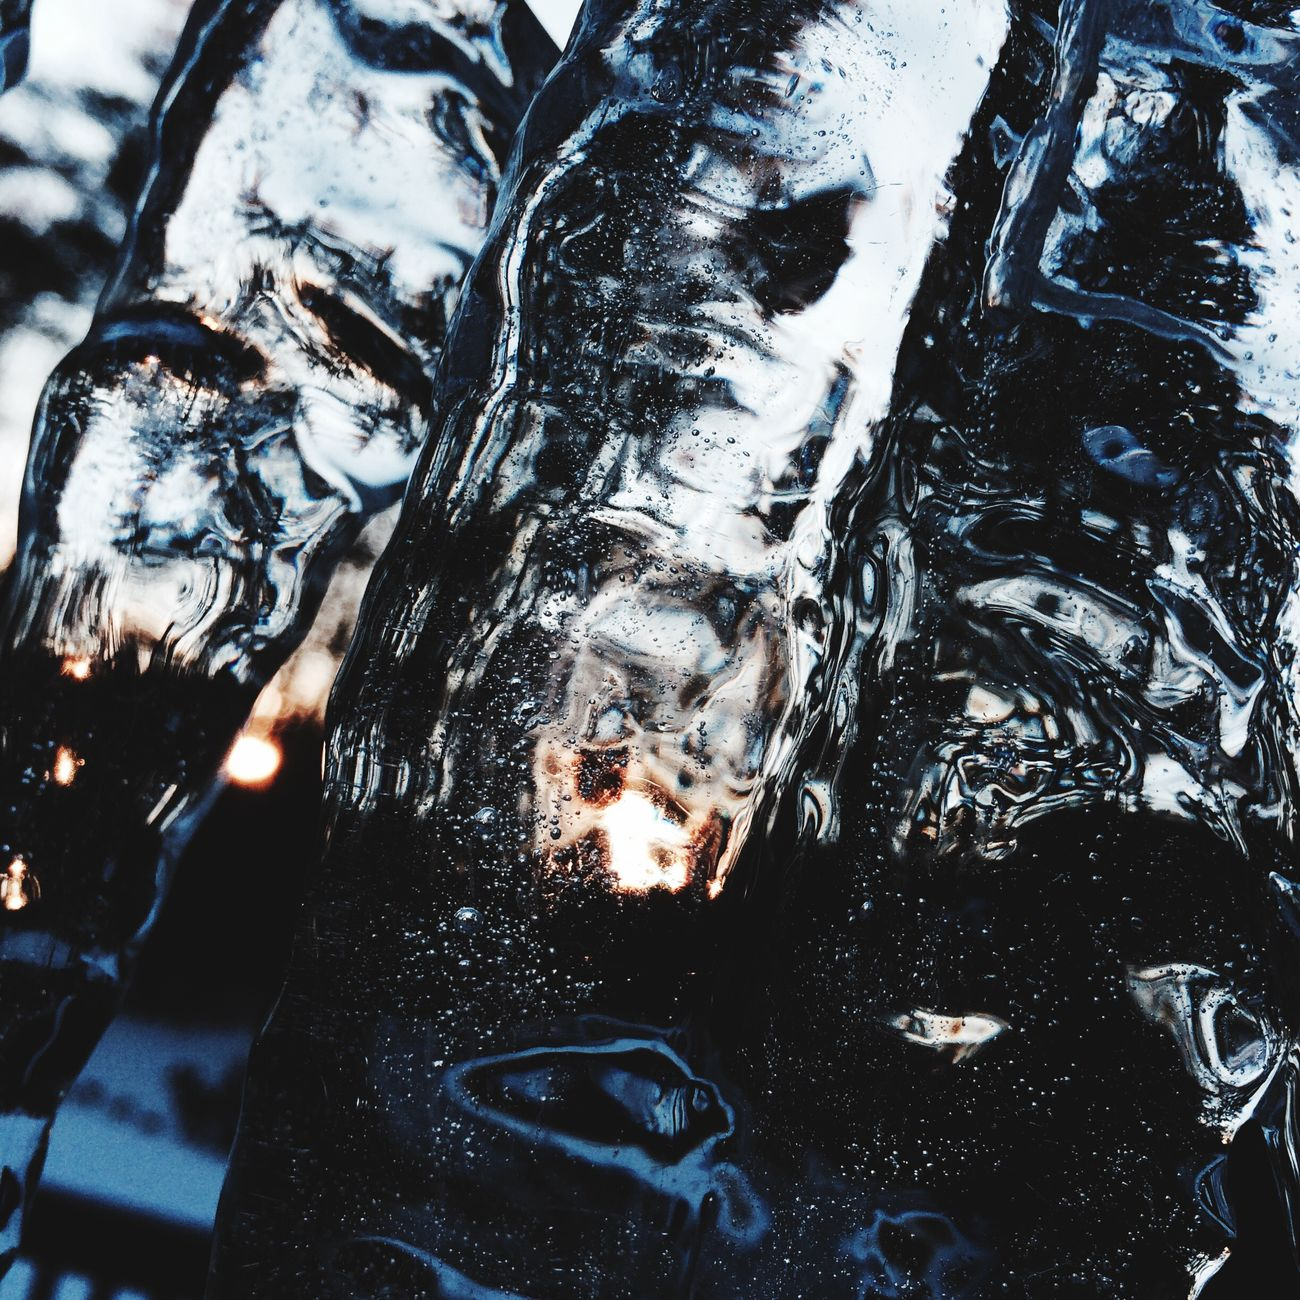 Water Full Frame Close-up No People Outdoors Nature Freshness Backgrounds Cold Temperature Day Icicles Ice Sunrise Winter Twilight